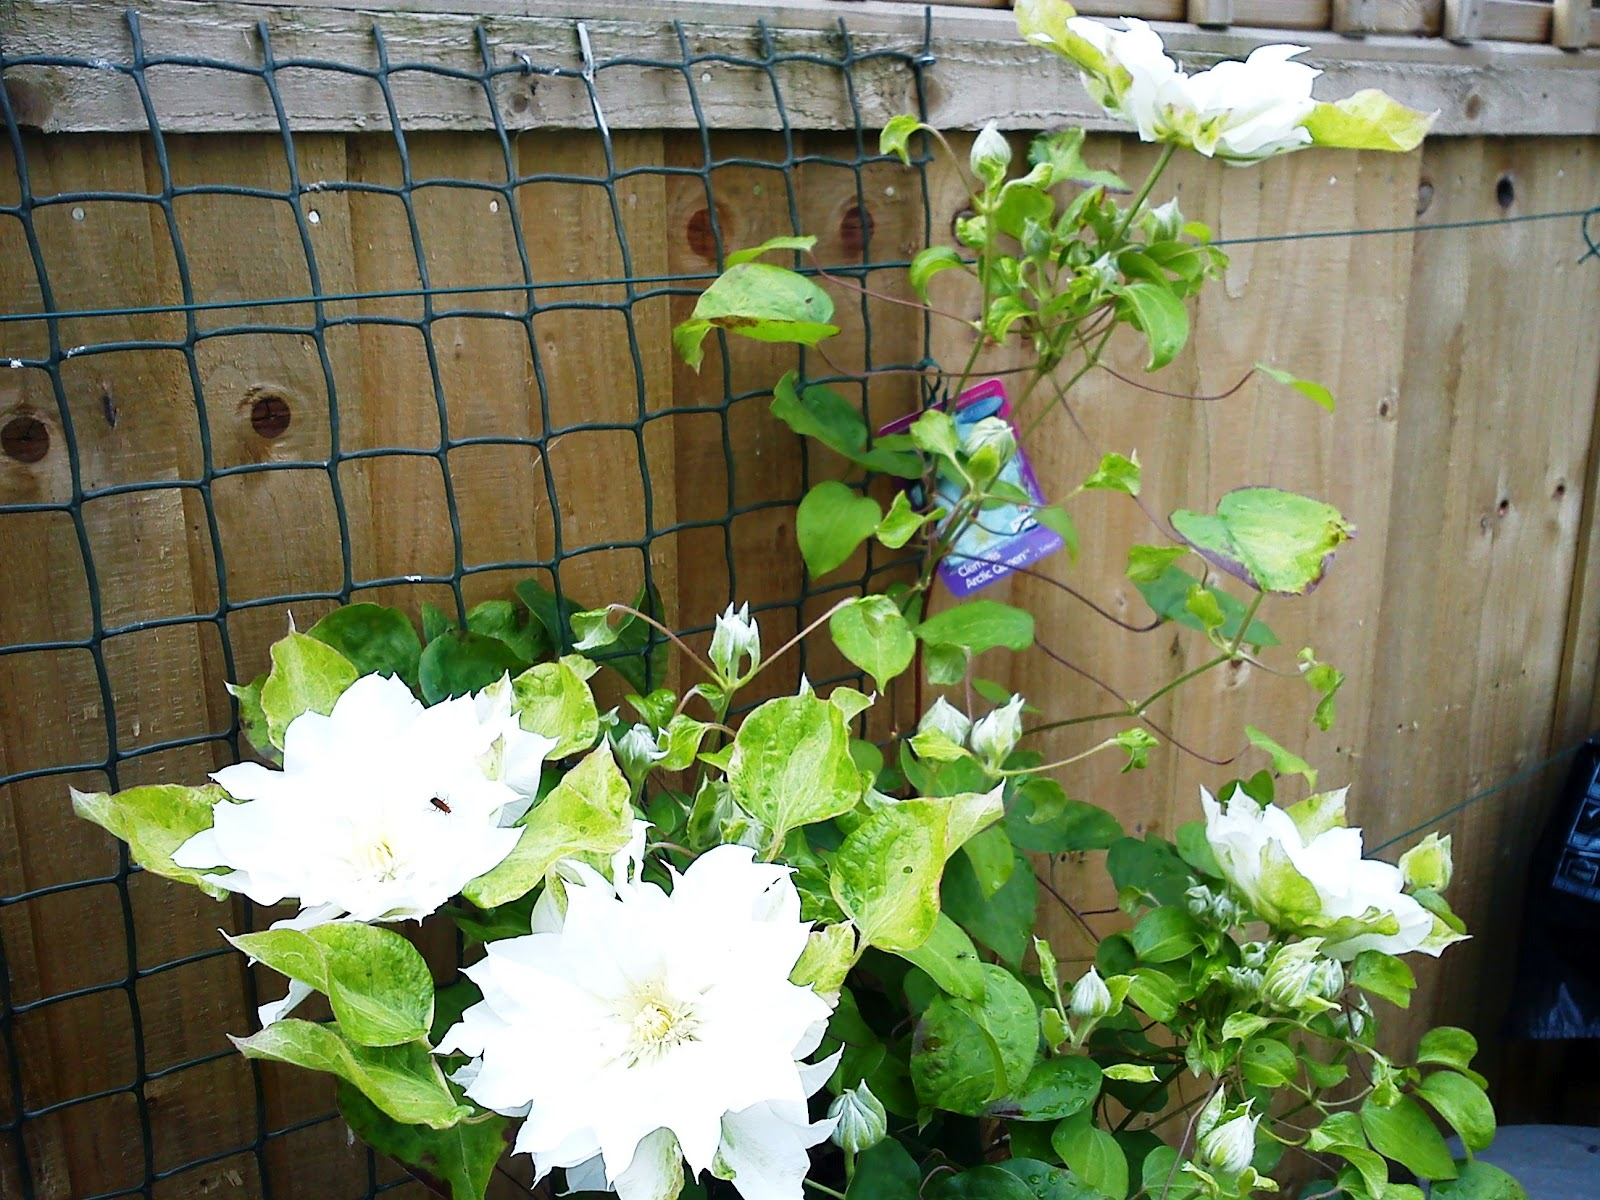 clematis arctic queen plantfiles pictures clematis early large flowered clematis arctic queen. Black Bedroom Furniture Sets. Home Design Ideas